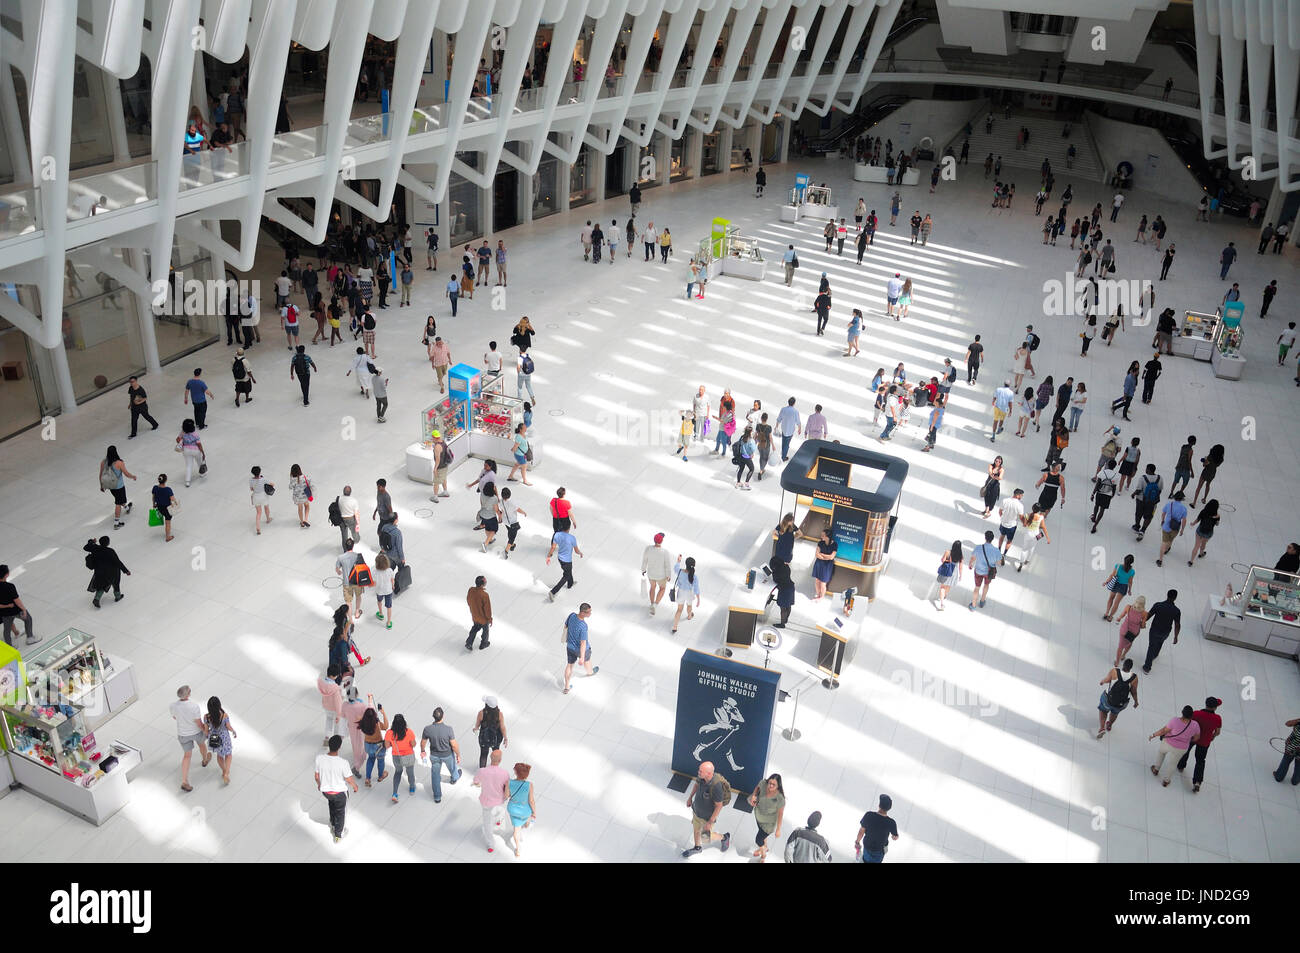 June 11, 2017.  New York City, New York.  People walking around within the newly completed world trade center transportation hub building Manahattan - Stock Image